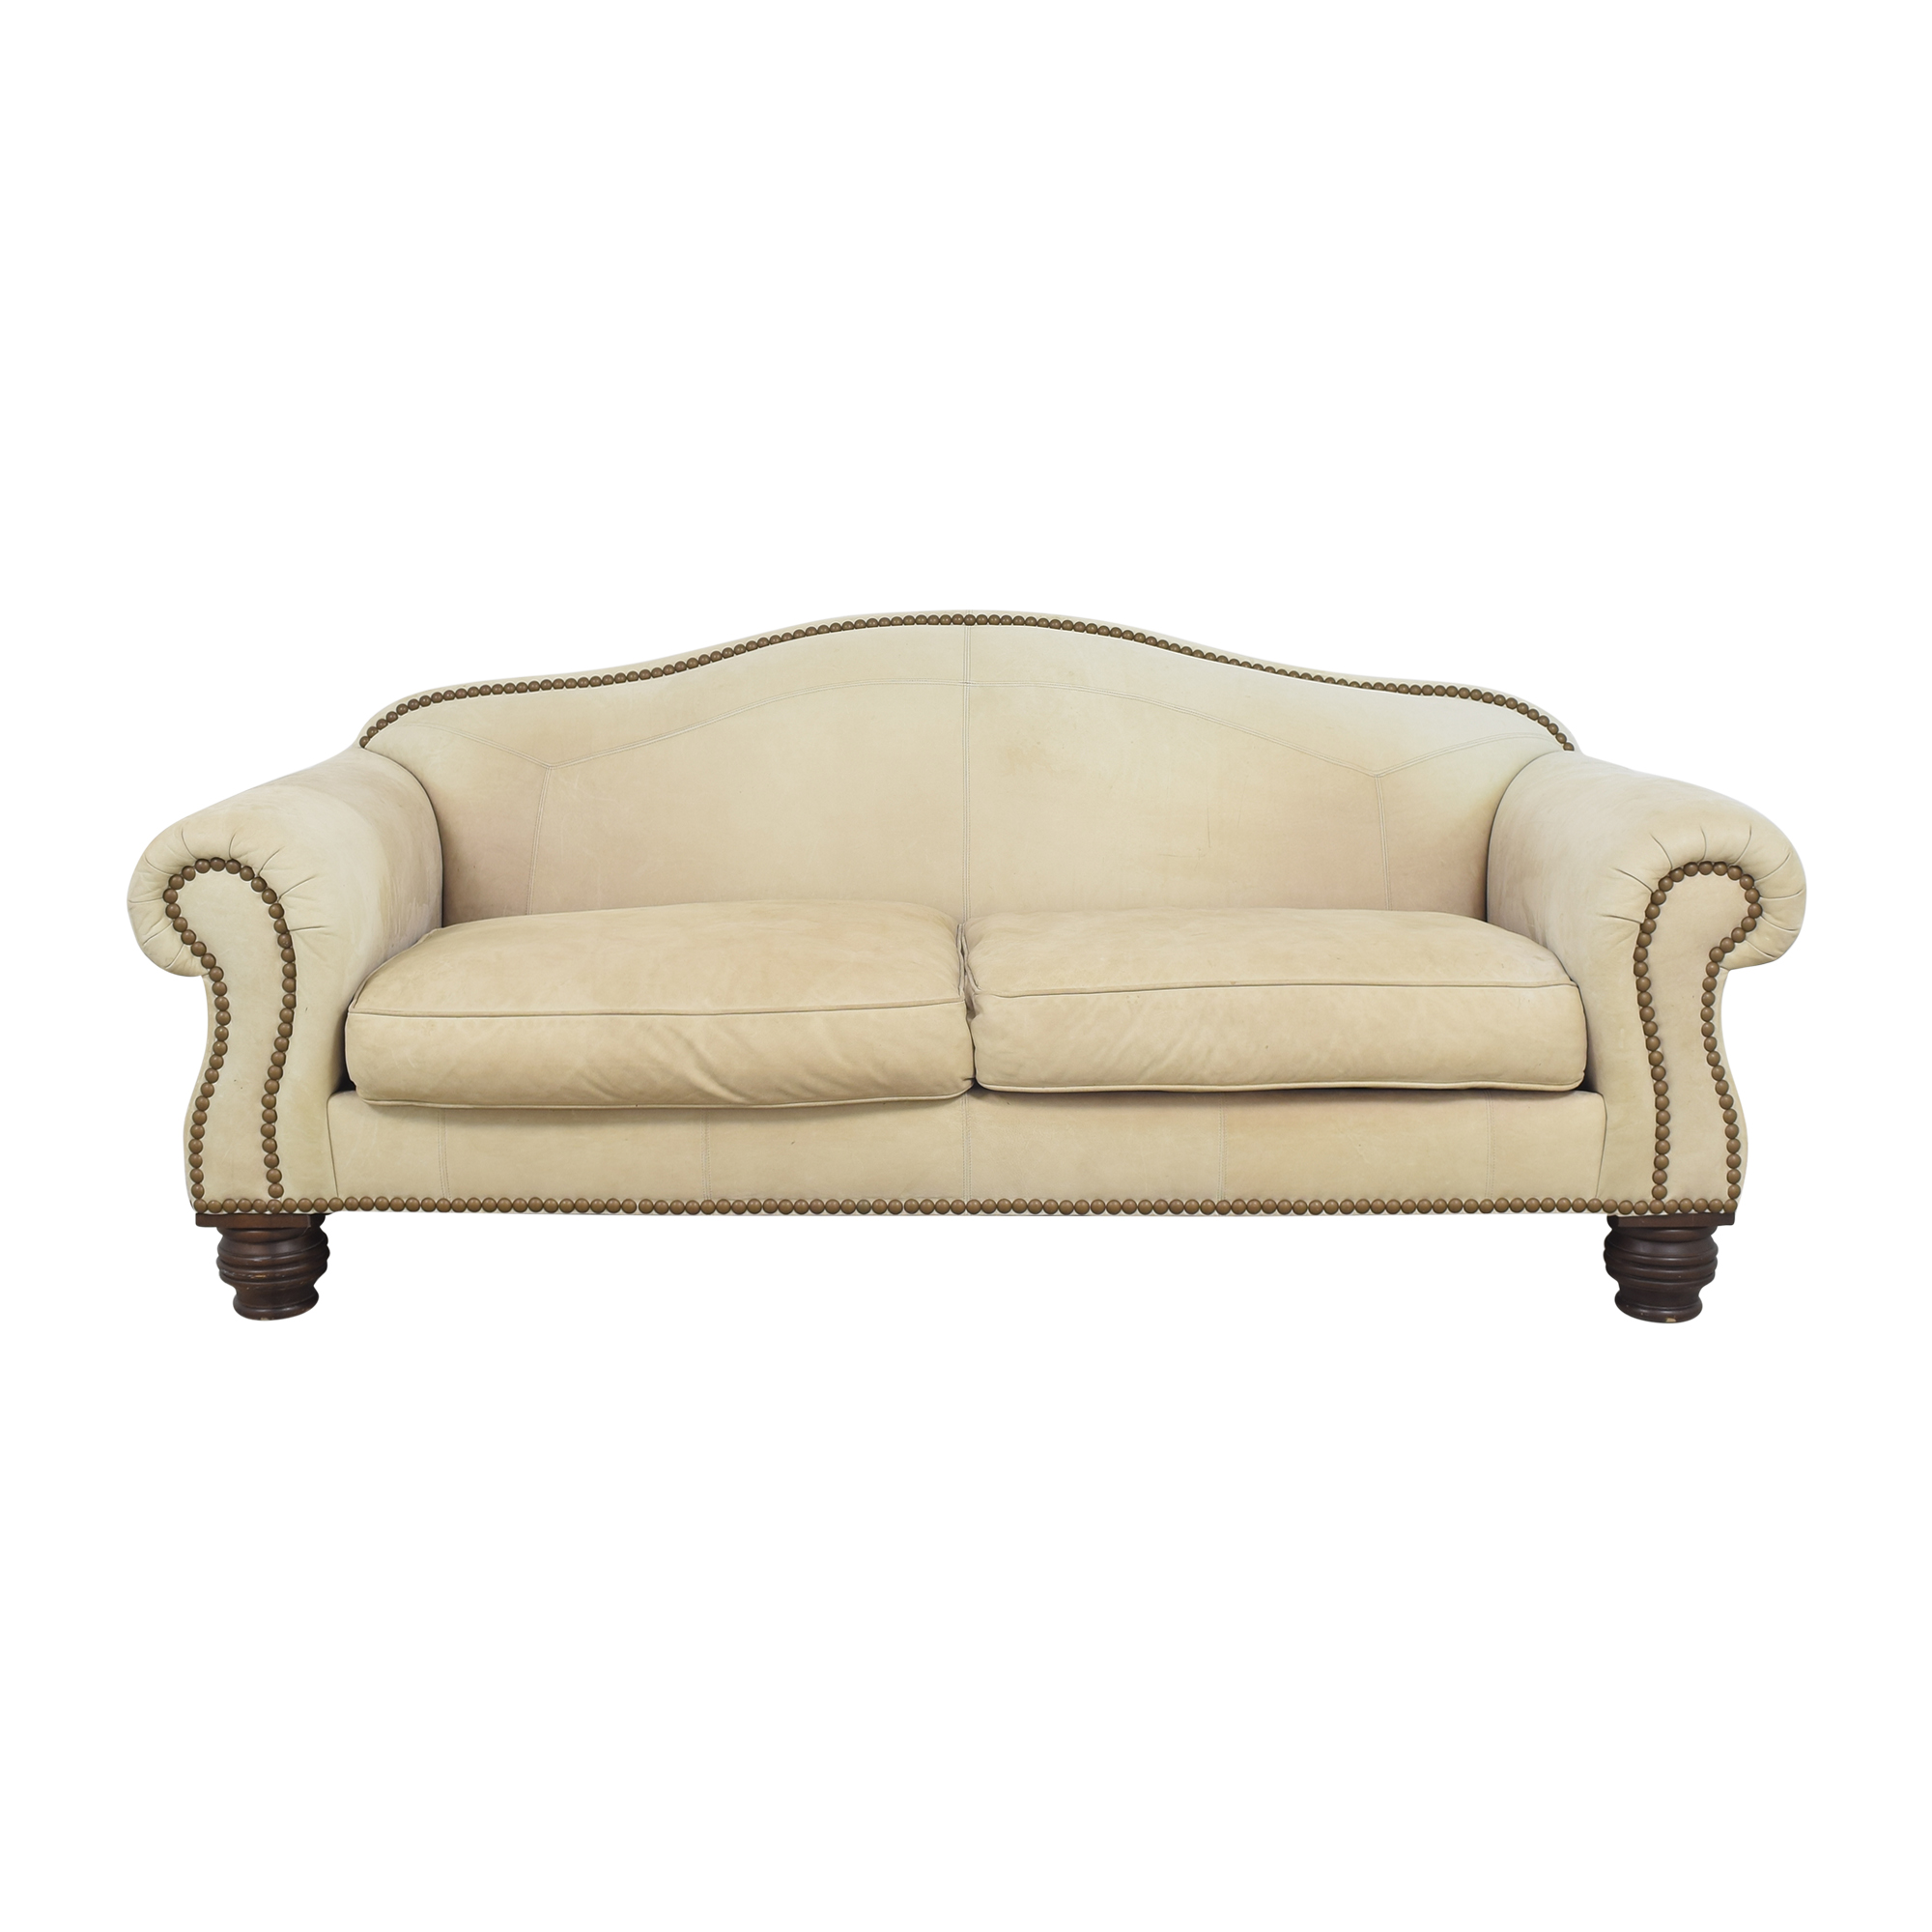 Lillian August Lillian August Nailhead Camelback Sofa ct